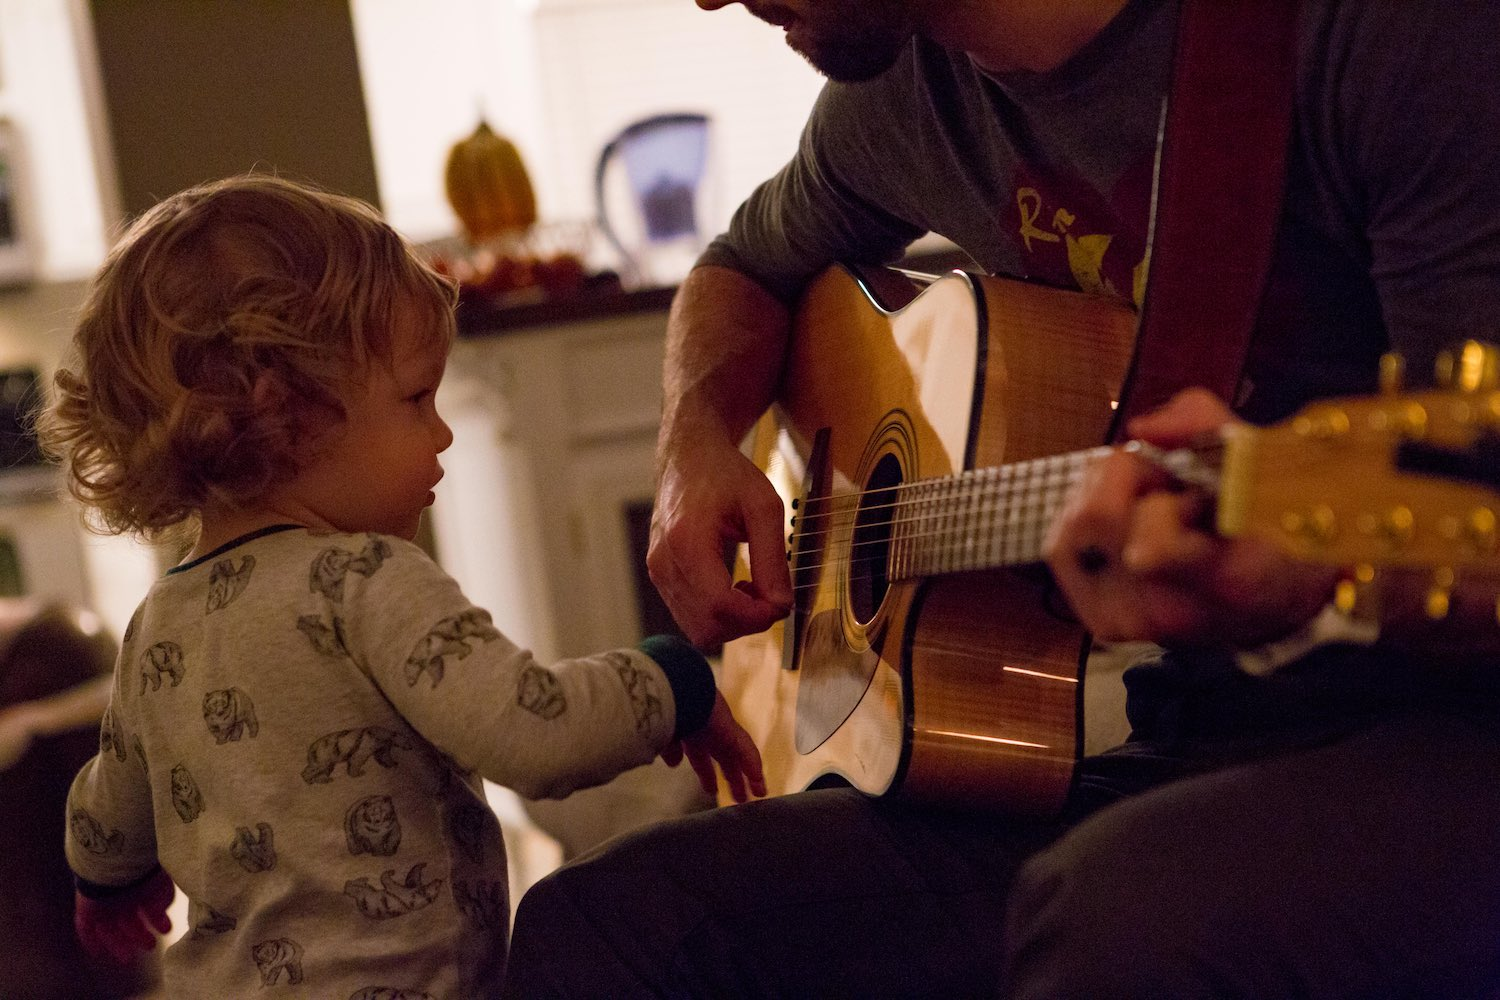 Finley loves music. Guitars and drums are his favorite.